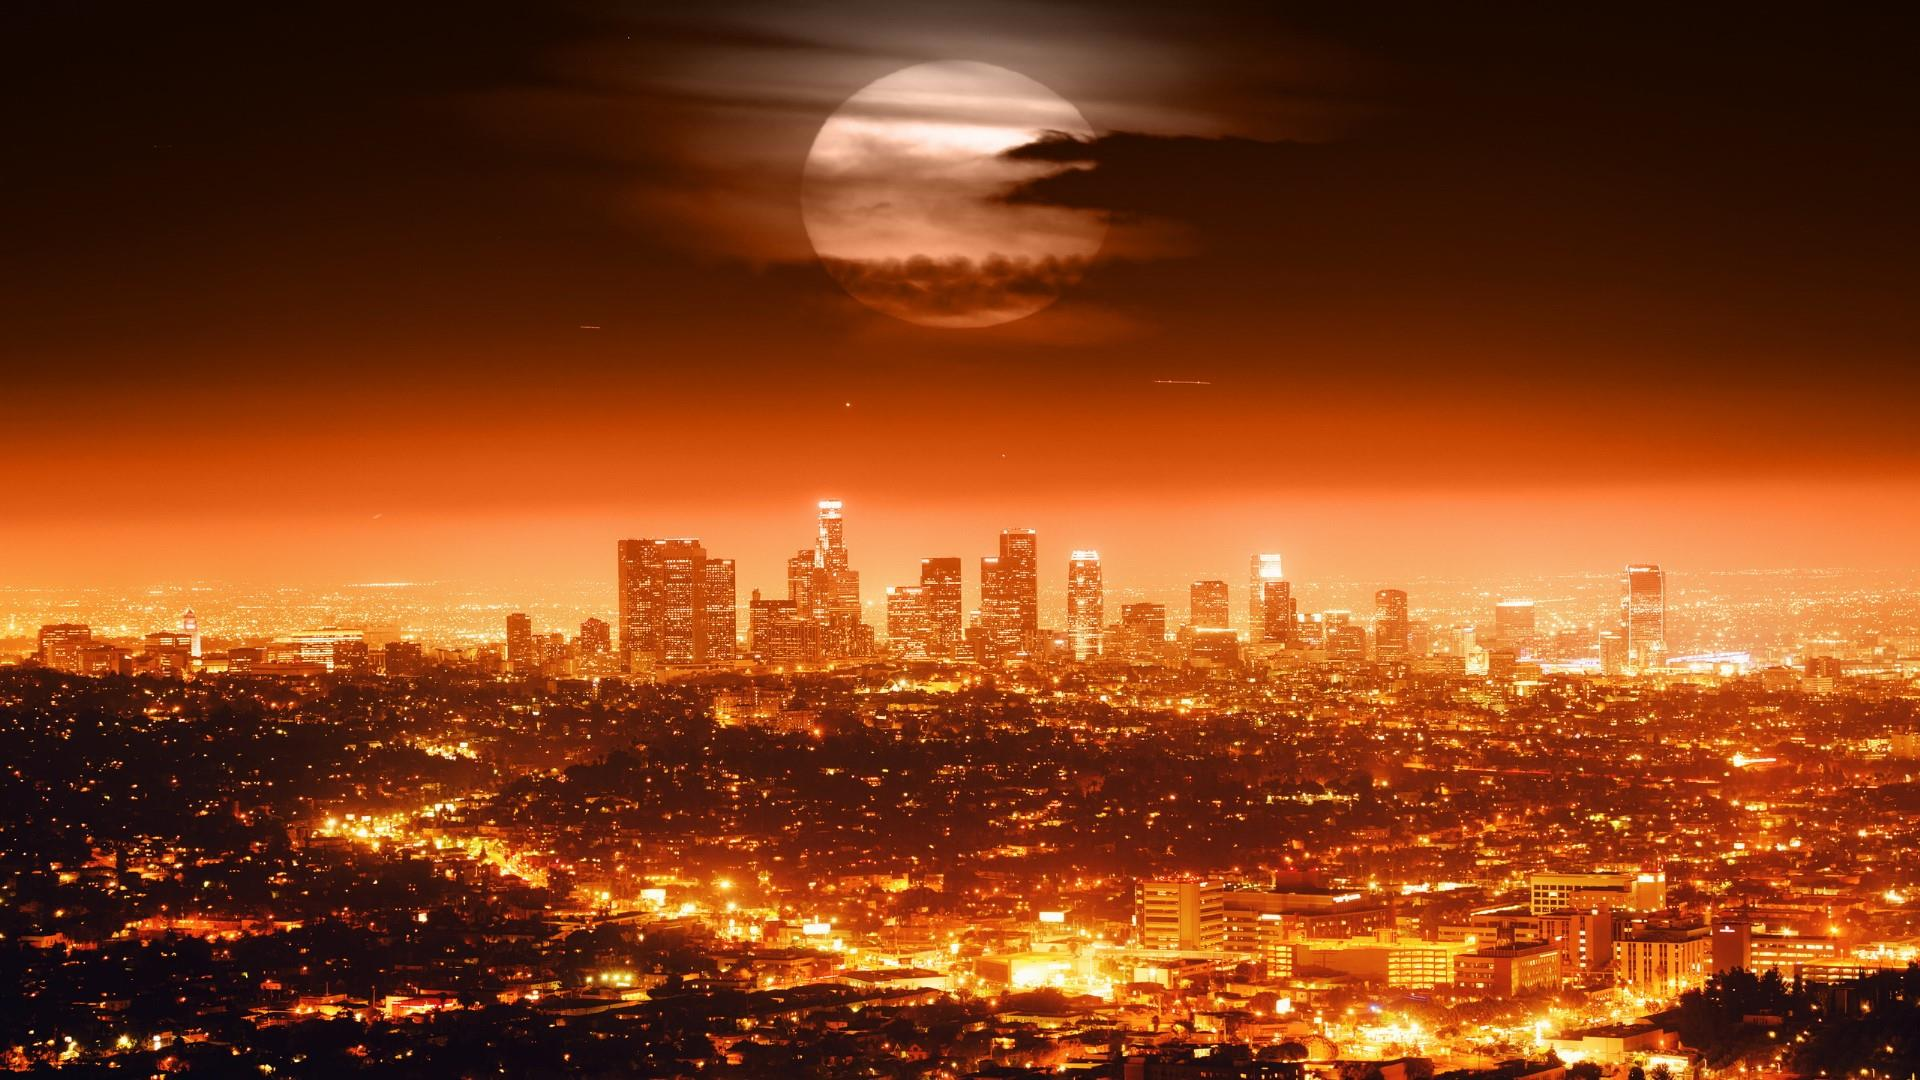 Full moon in the dark sky above Los Angeles  wallpaper